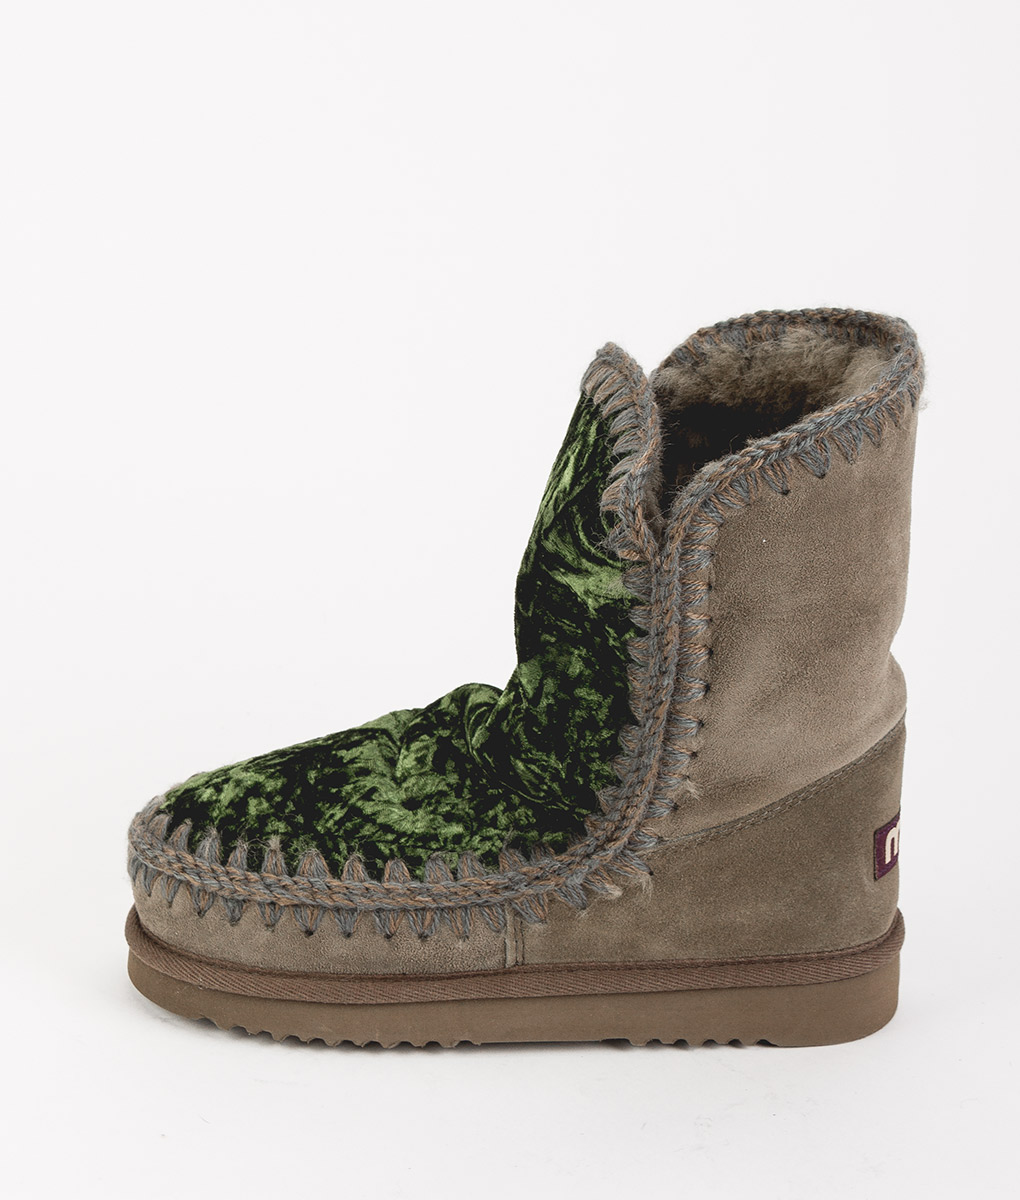 MOU Women Ankle Boots ESKIMO BOOT 24 LIMITED EDITION, Musha 214.99